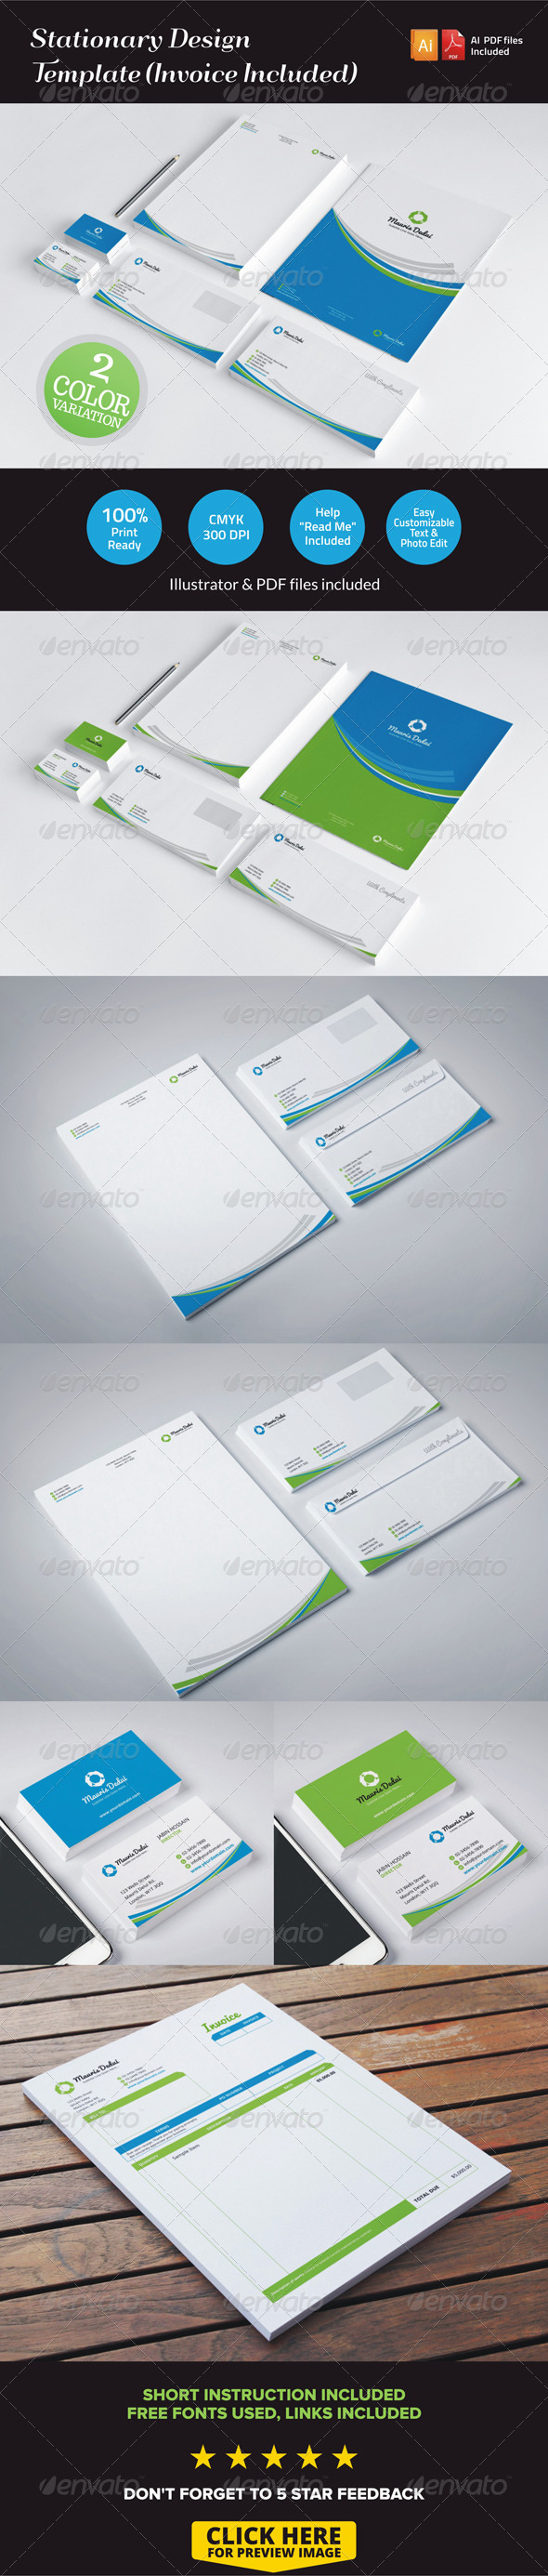 GraphicRiver Stationary Design Template Invoice Included 7058061